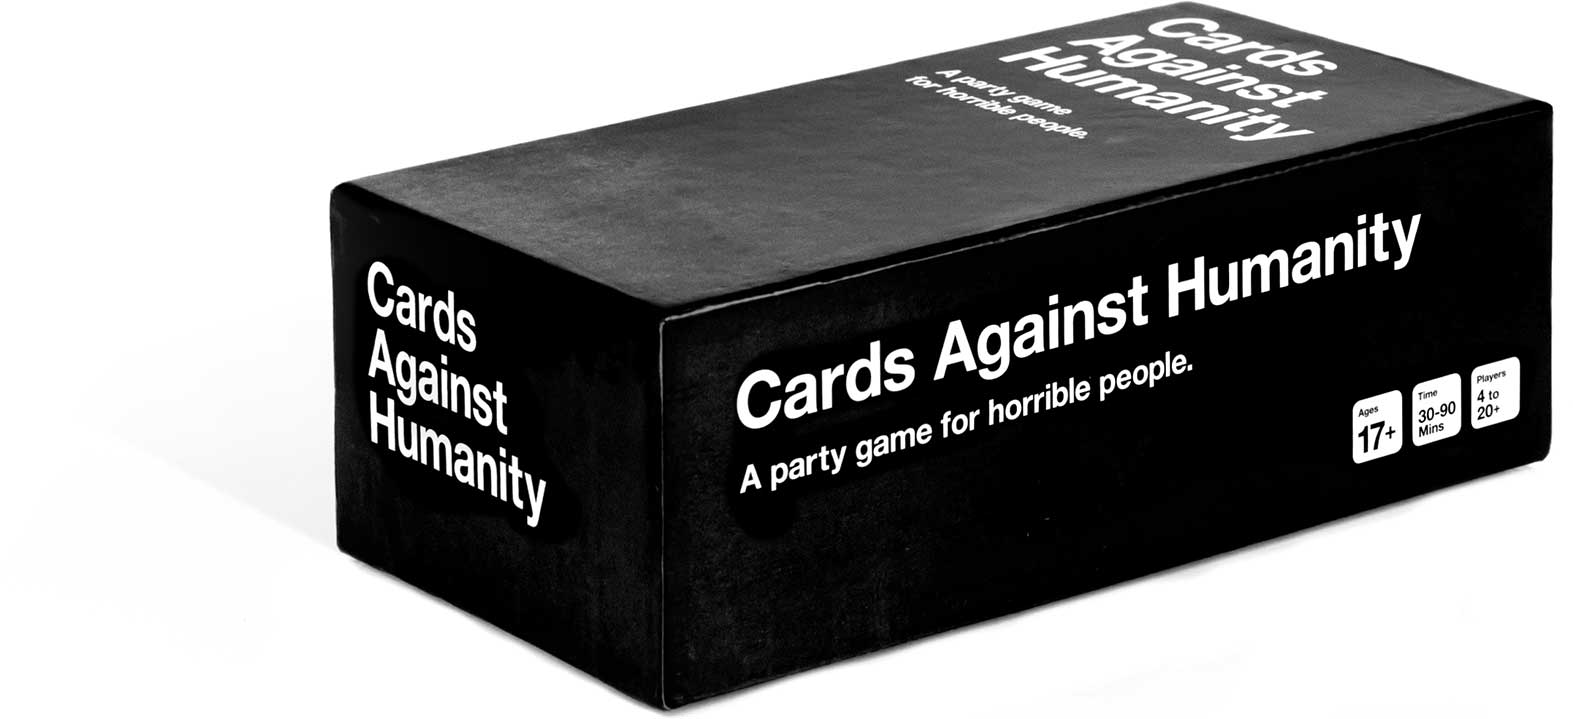 The main deck of Cards Against Humanity